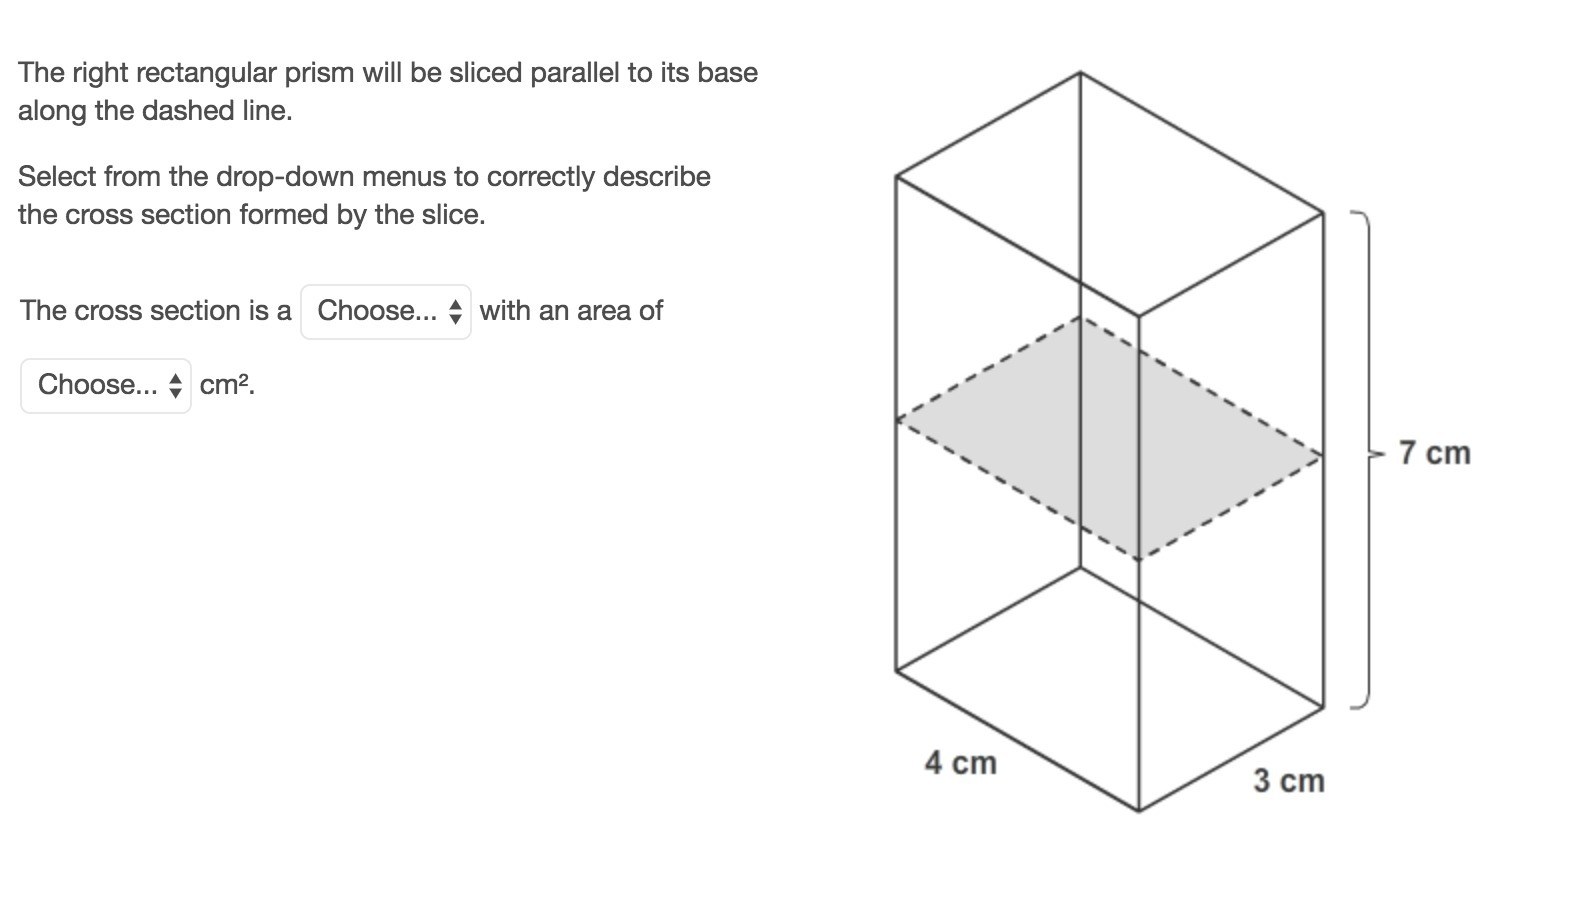 The right rectangular prism will be sliced parallel to its ...